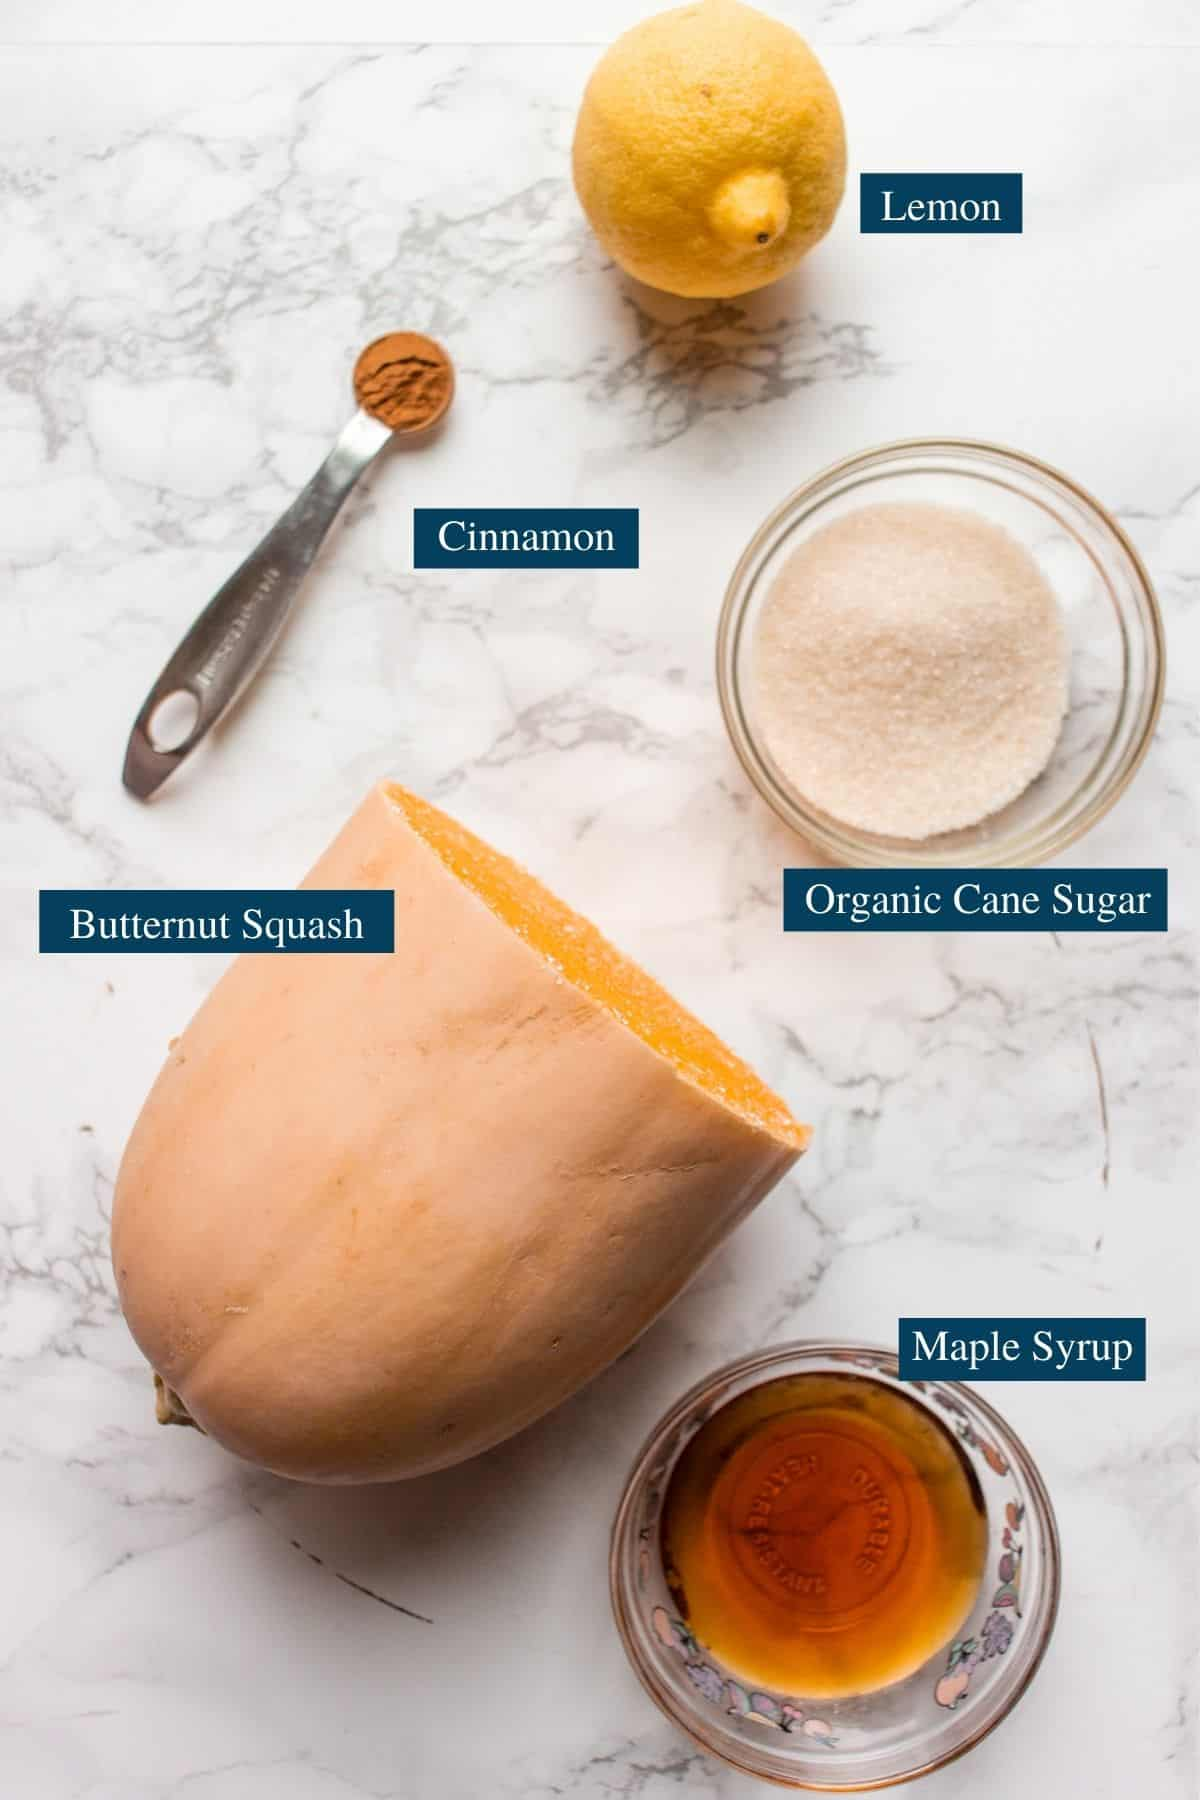 Photo of the ingredients for the candied butternut squash